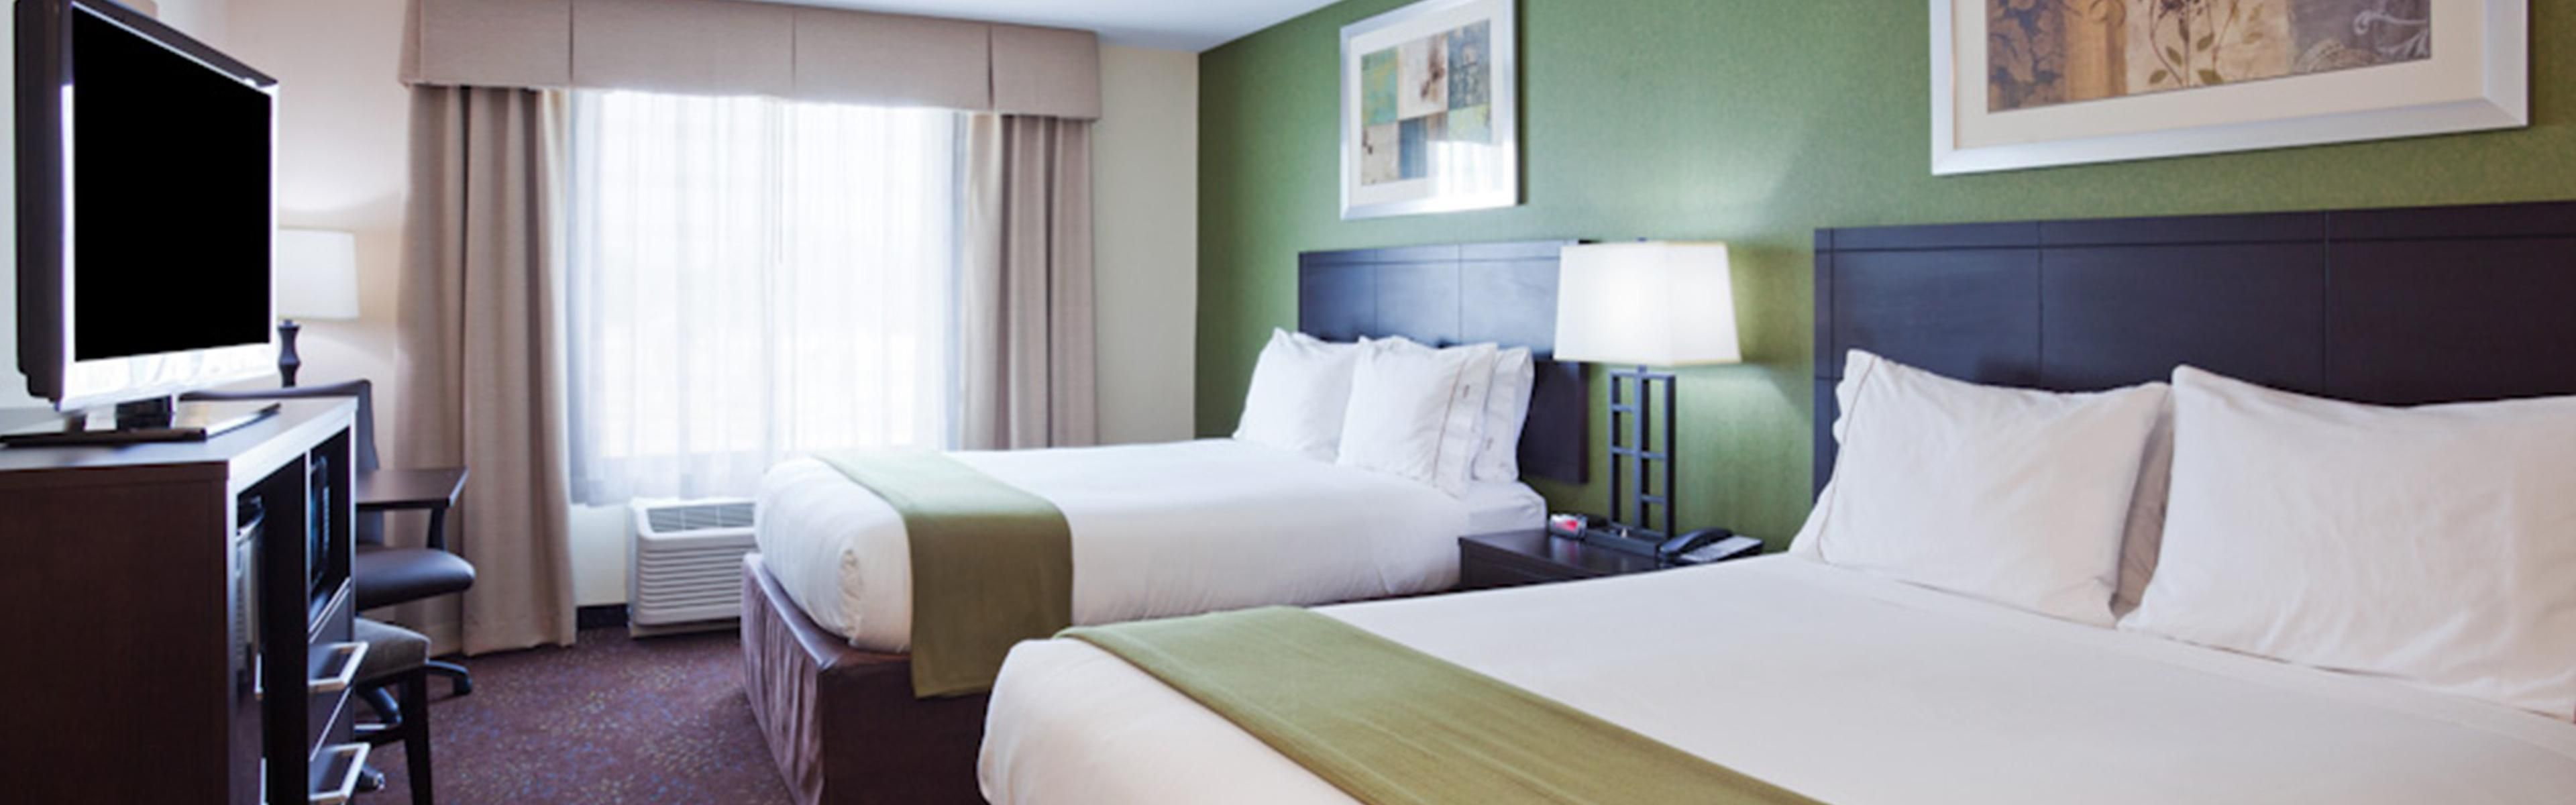 Holiday Inn Express & Suites Rochester - Mayo Clinic Area image 1